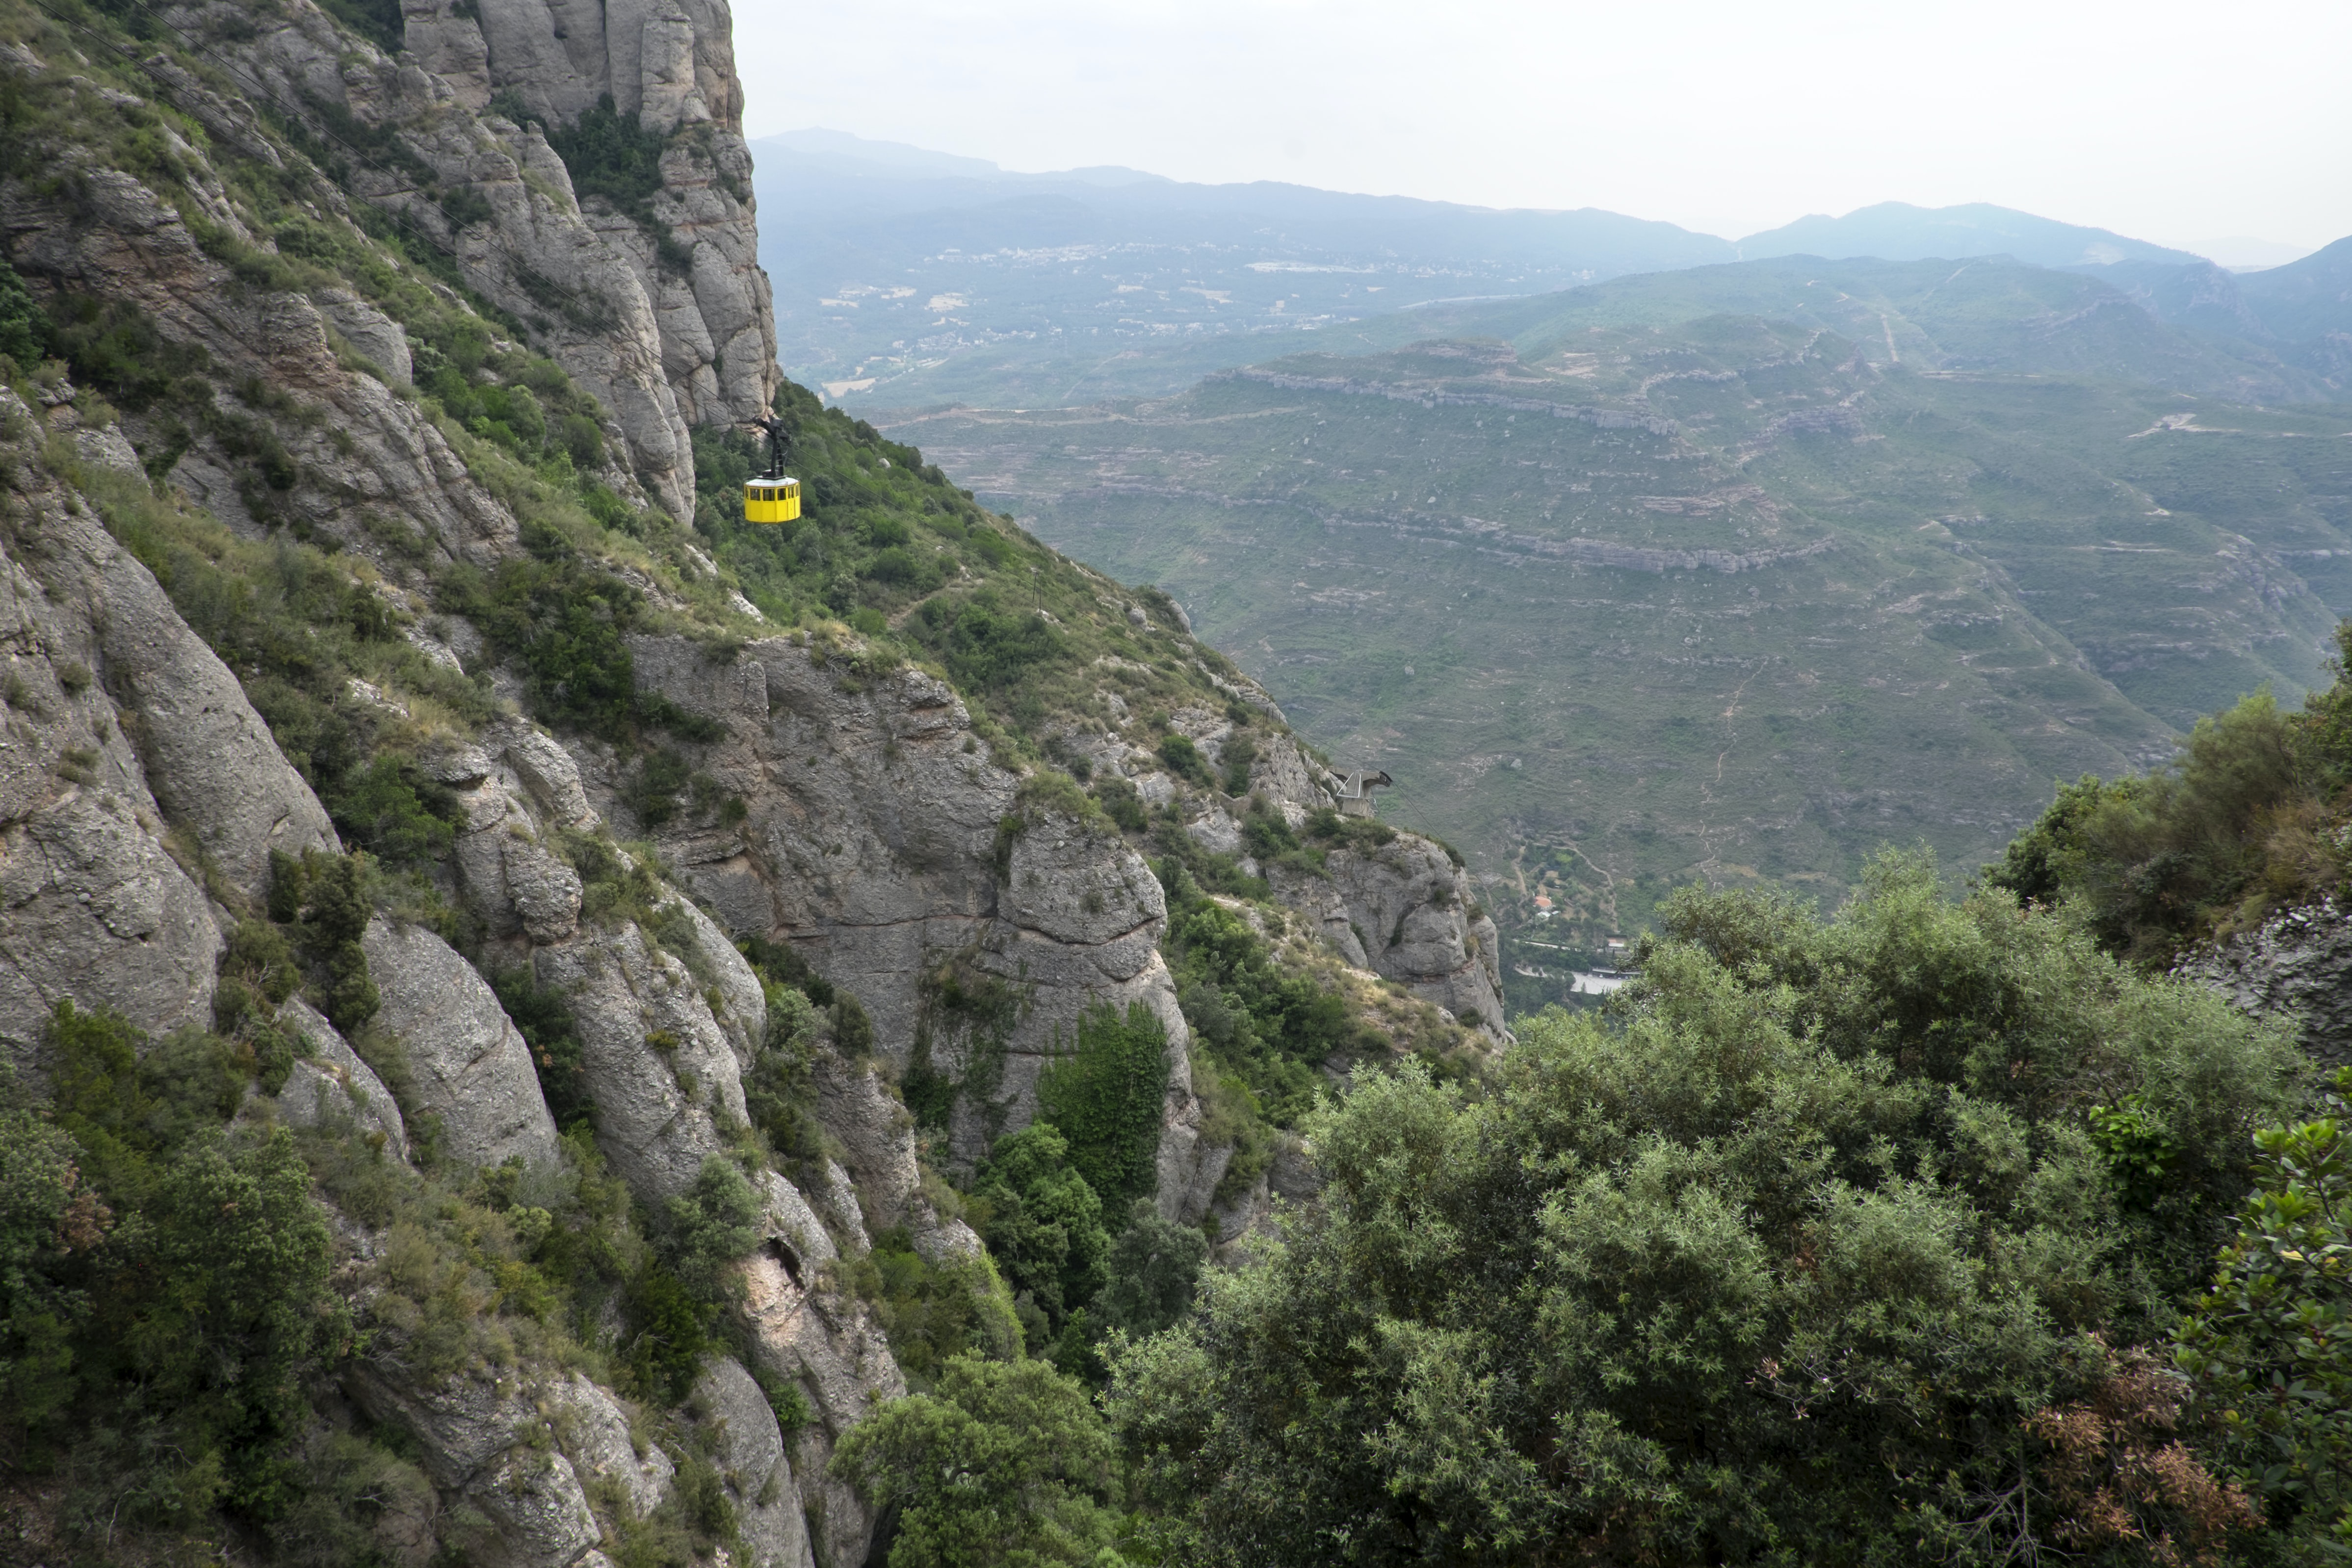 Long shot of yellow cable car travelling through mountain valley with vegetation